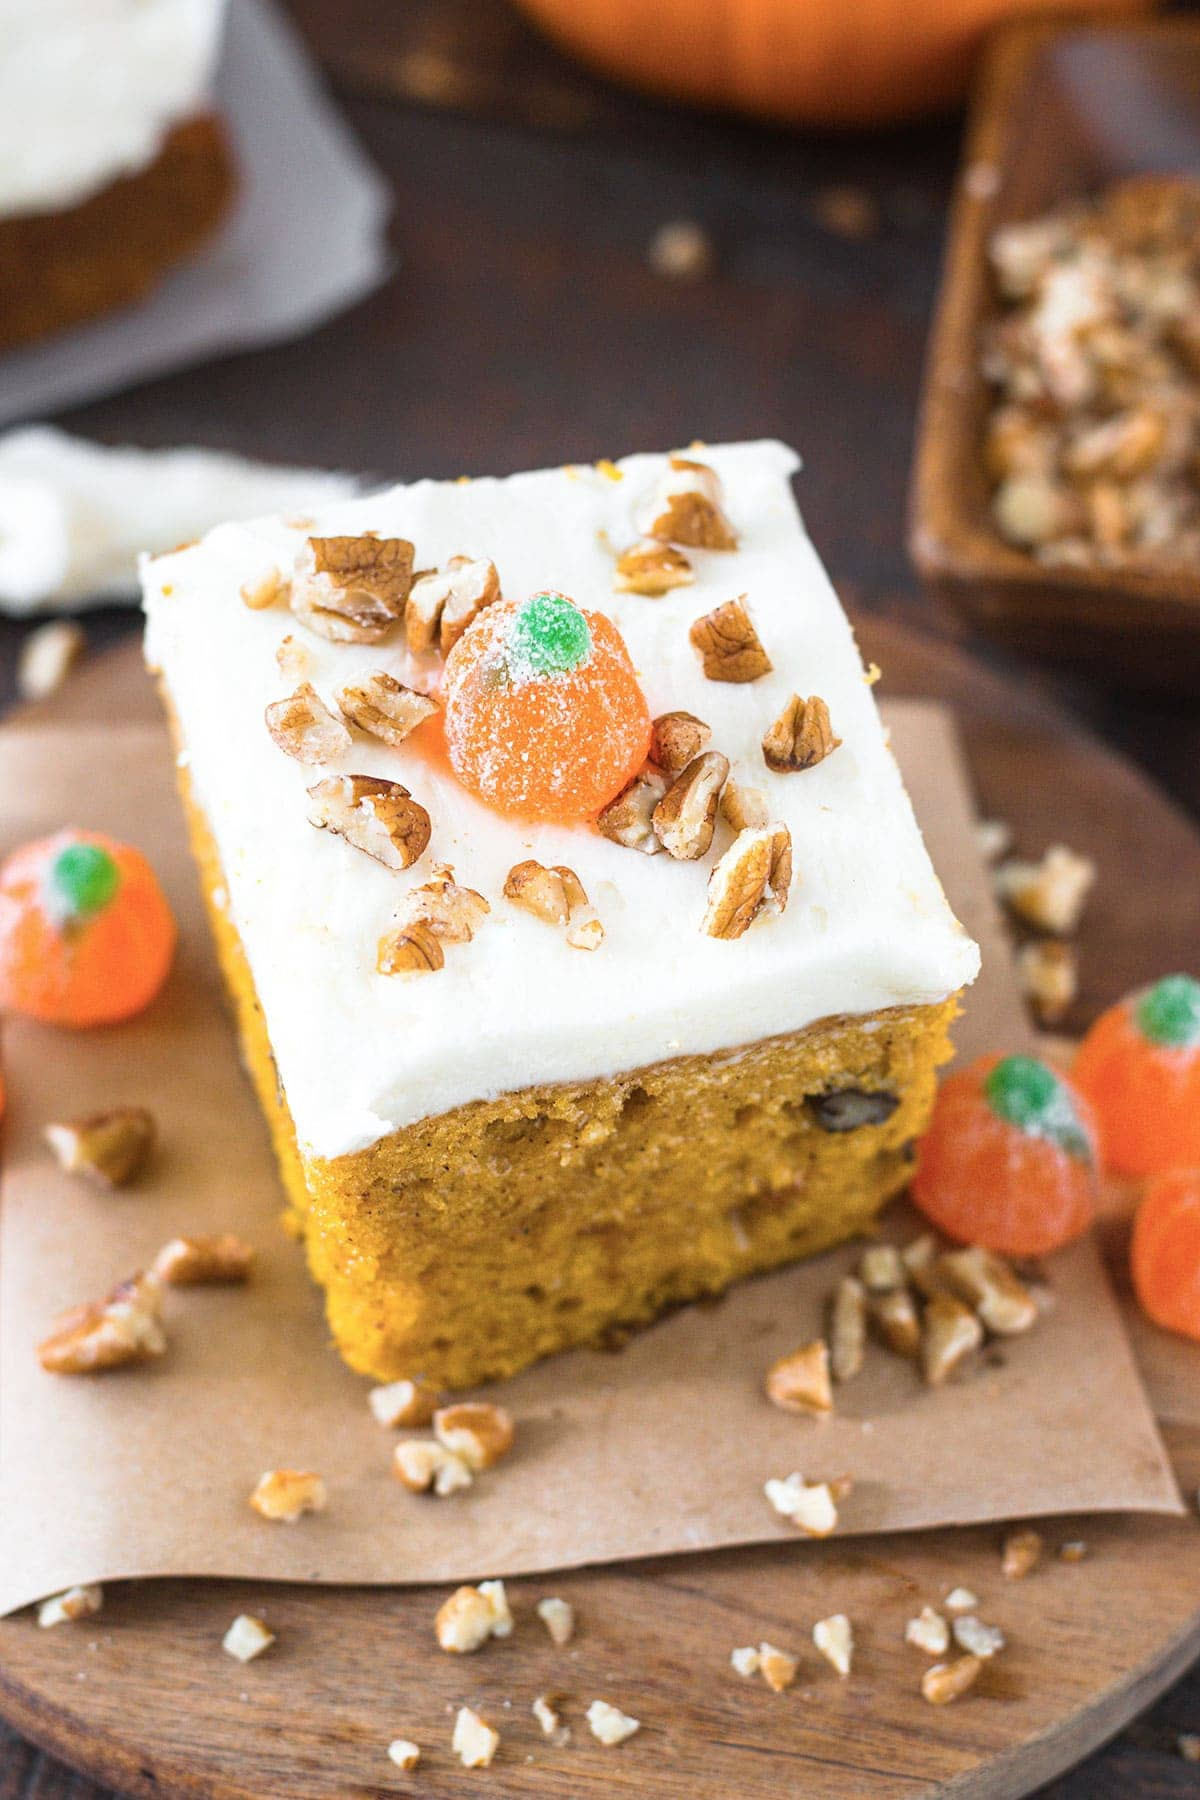 Slice of pumpkin cake topped with whimsical candy pumpkins and and pecan pieces.